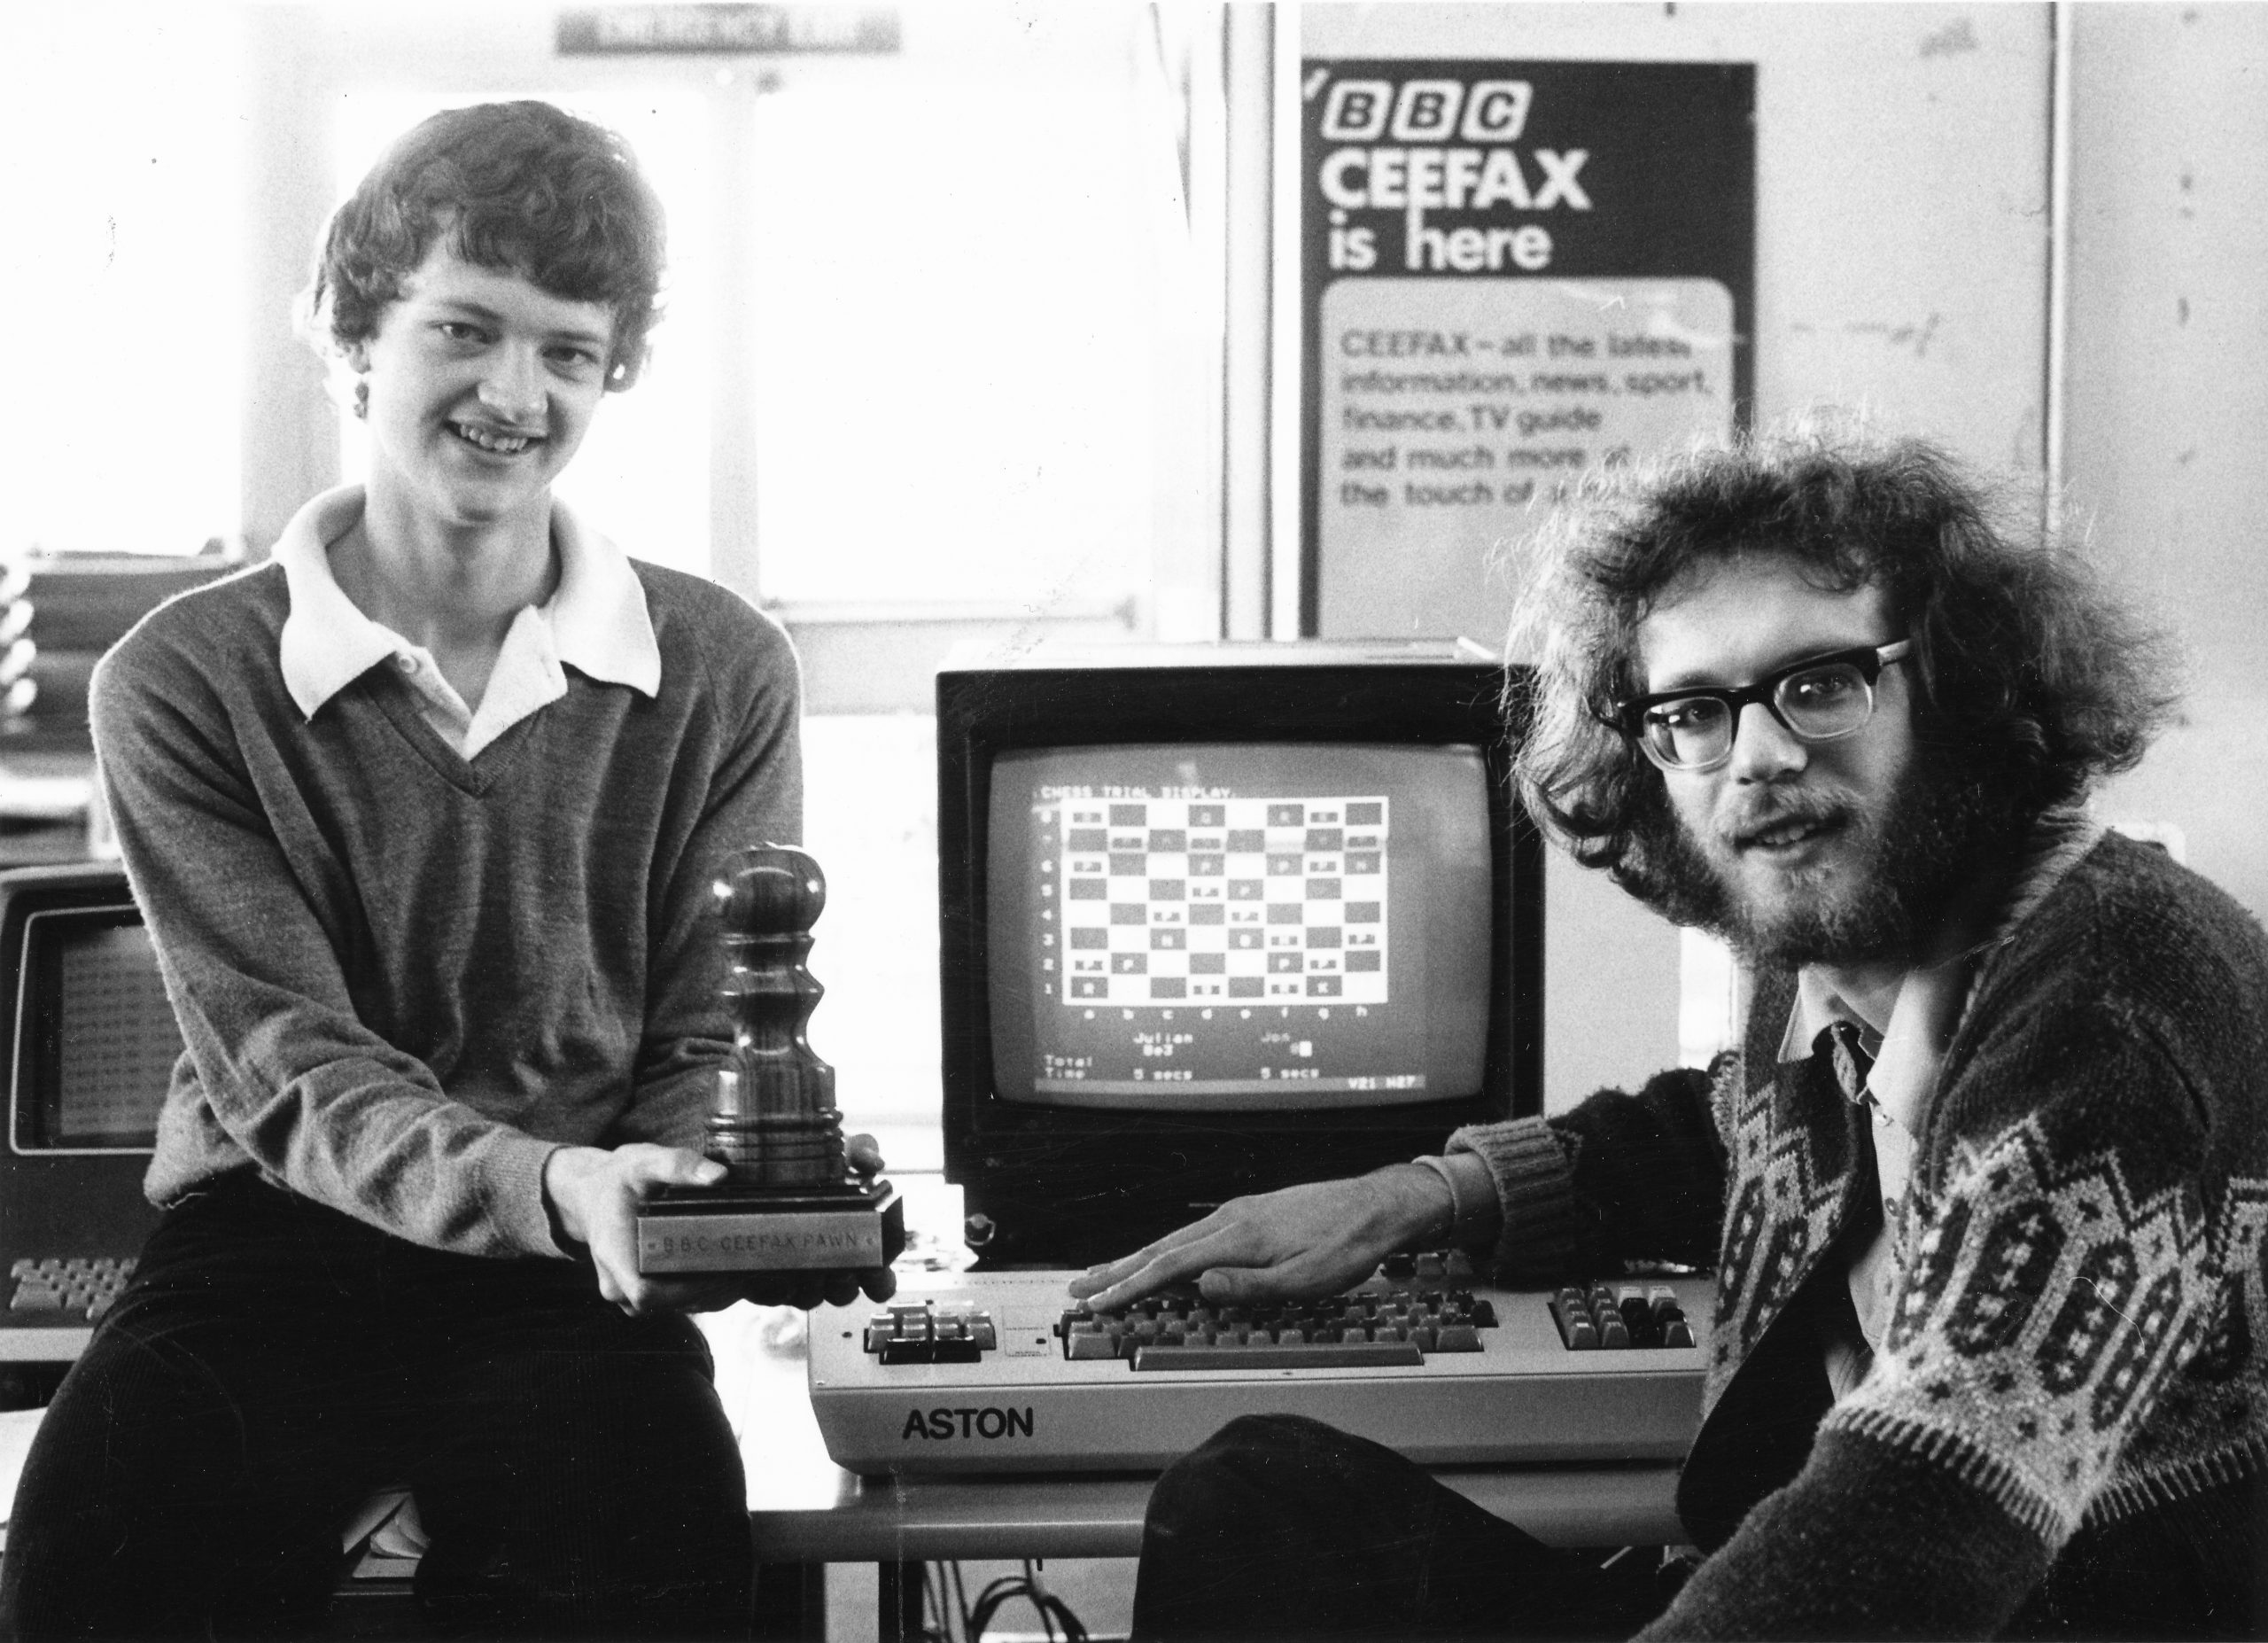 Julian Hodgson and Jonathan Speelman prepare to play each other at their own home via CEEEFAX. This was organised by Peter Andrews of BBC Chess Club and was the first match of its kind.